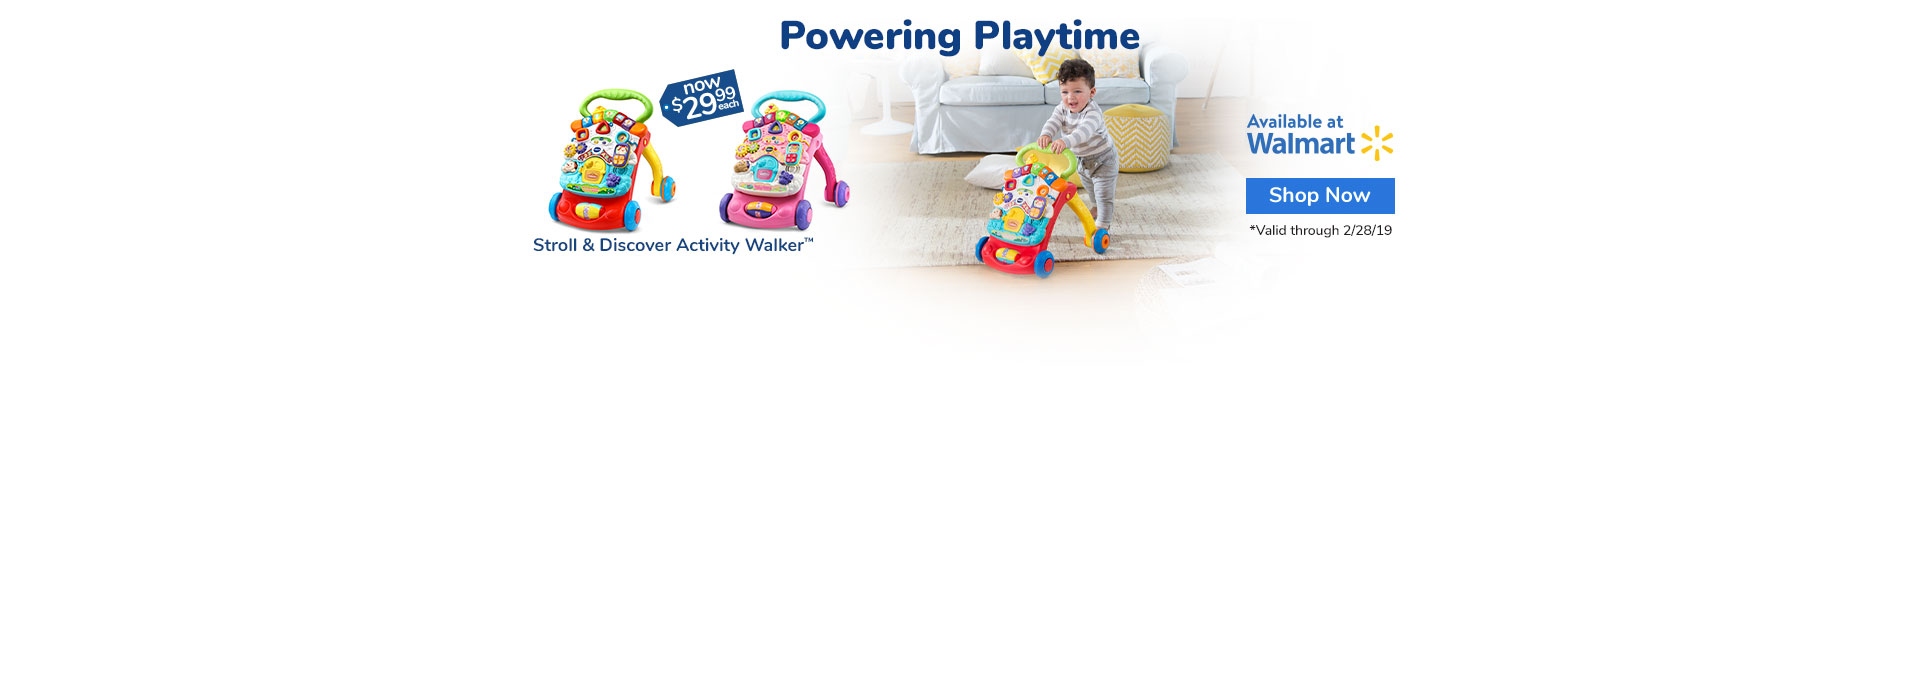 Stroll & Discover Activity Walker | Buy Now at Walmart